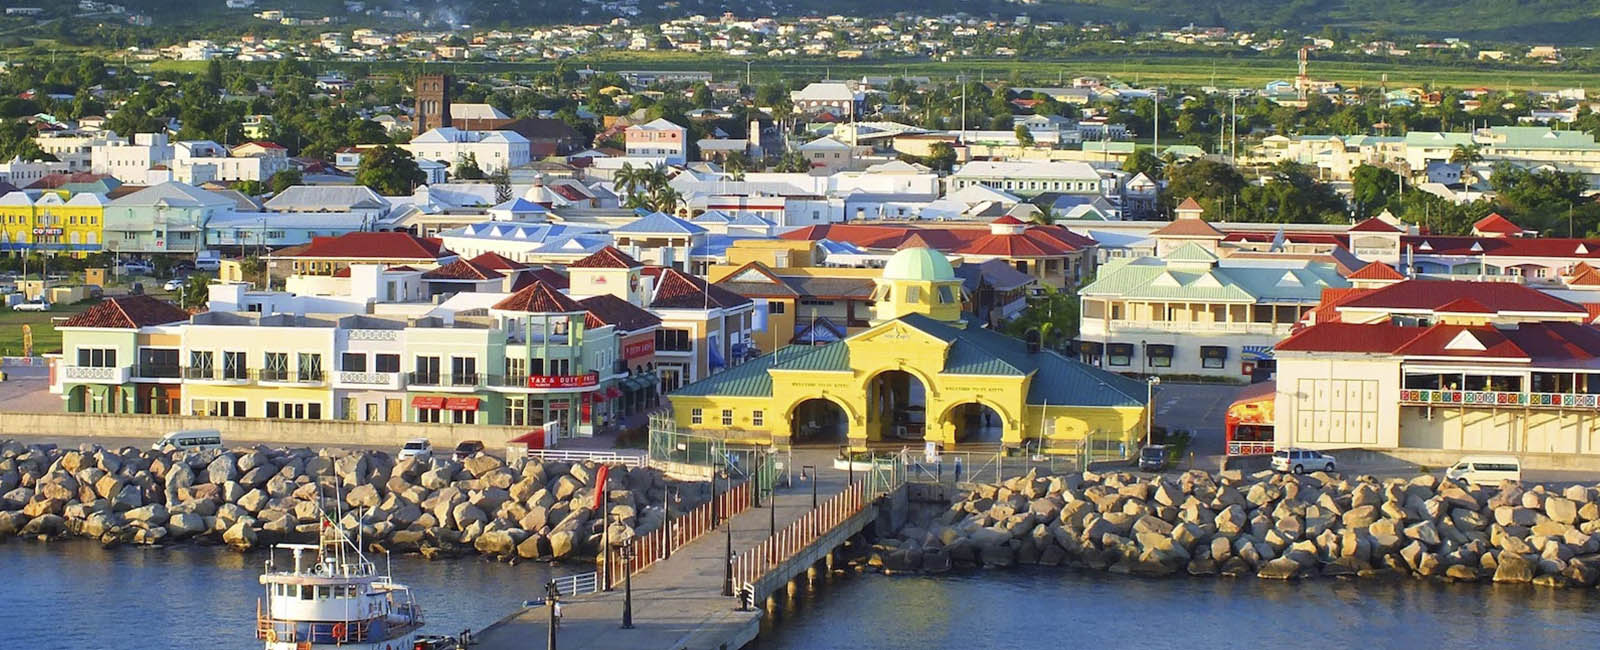 Saint Kitts & Nevis Citizenship by Investment Program